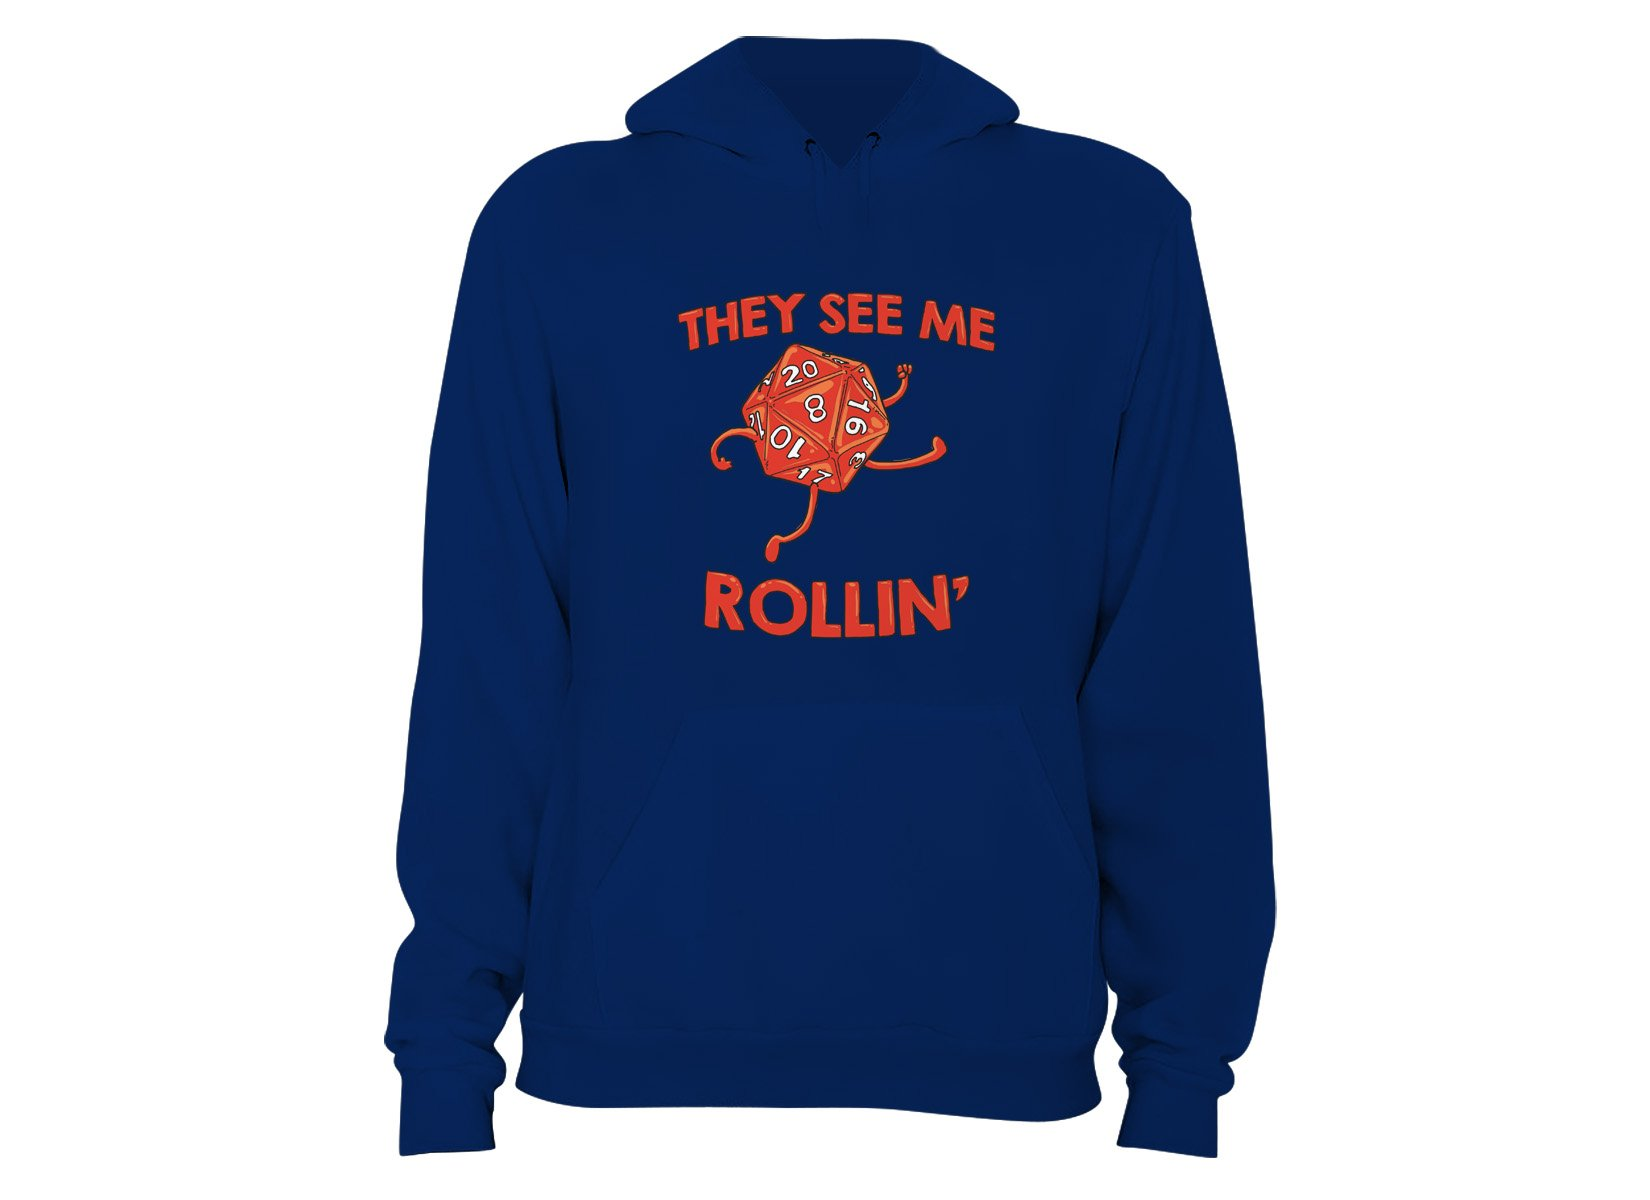 They See Me Rollin' on Hoodie